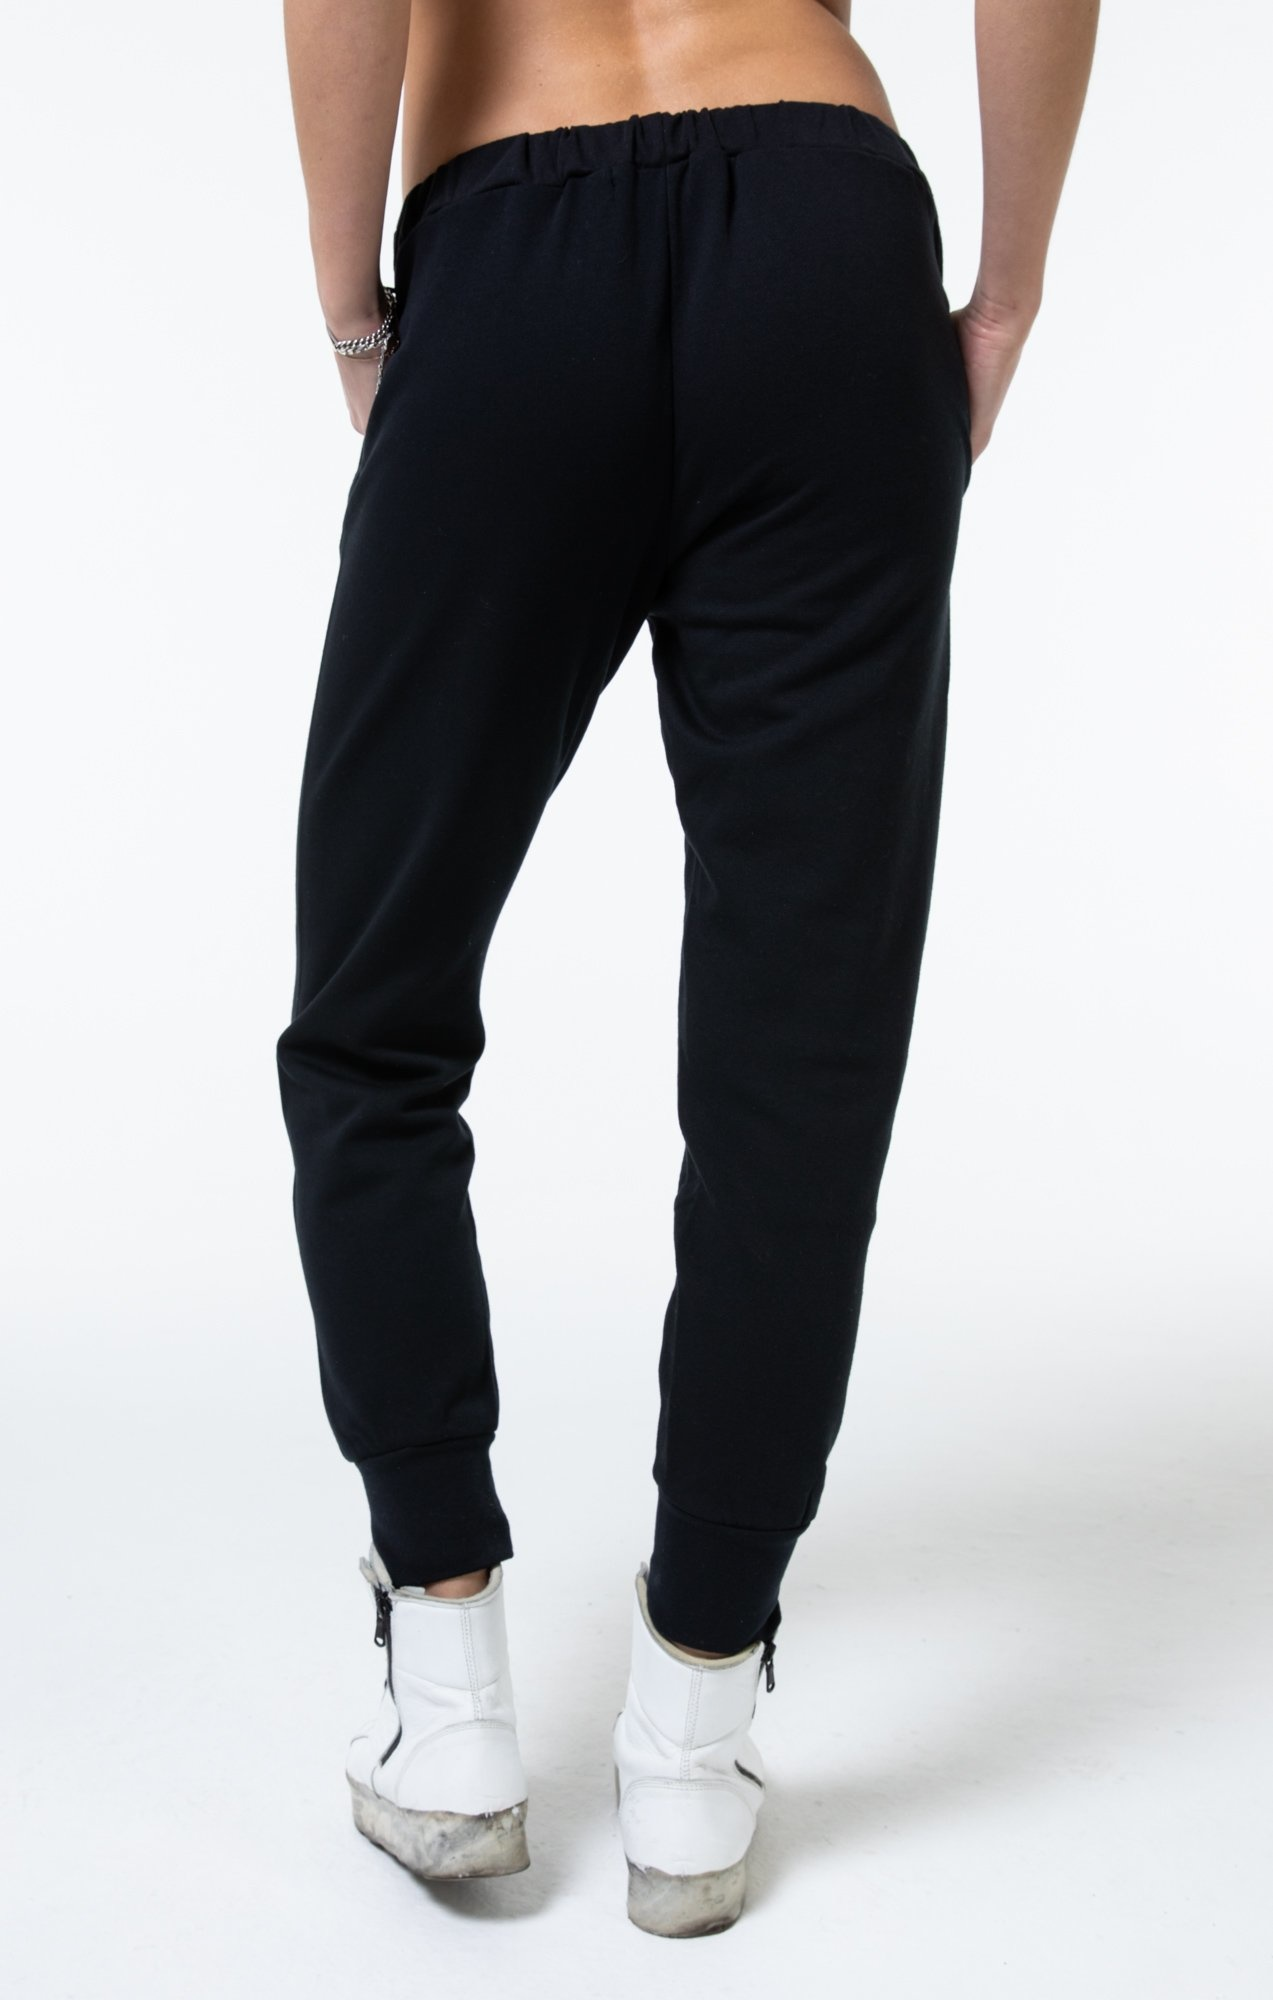 The Laundry Room Female State Stirrup Pants